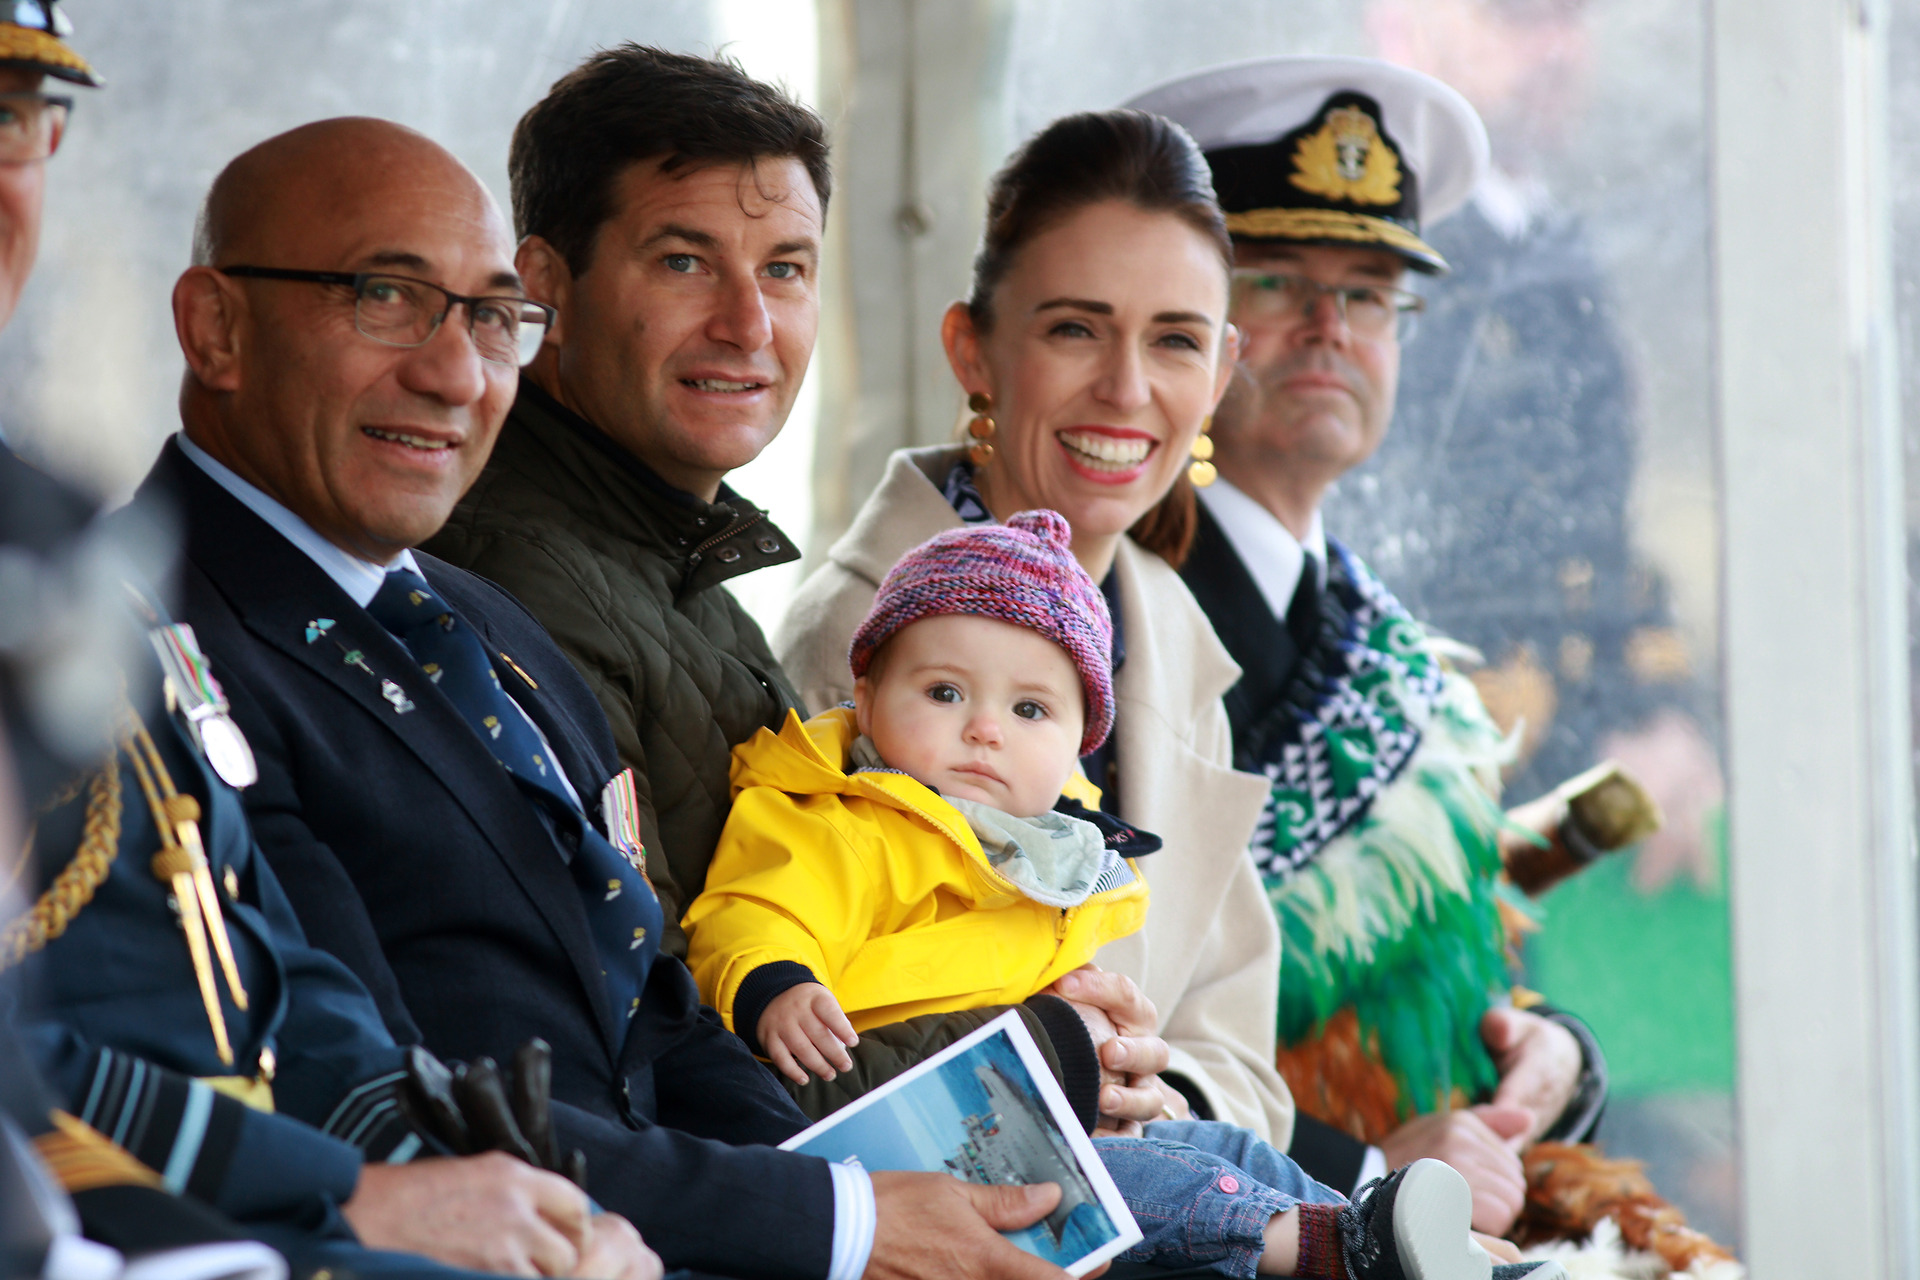 Clarke Gayford on travelling with baby Neve, for Trip Notes podcast